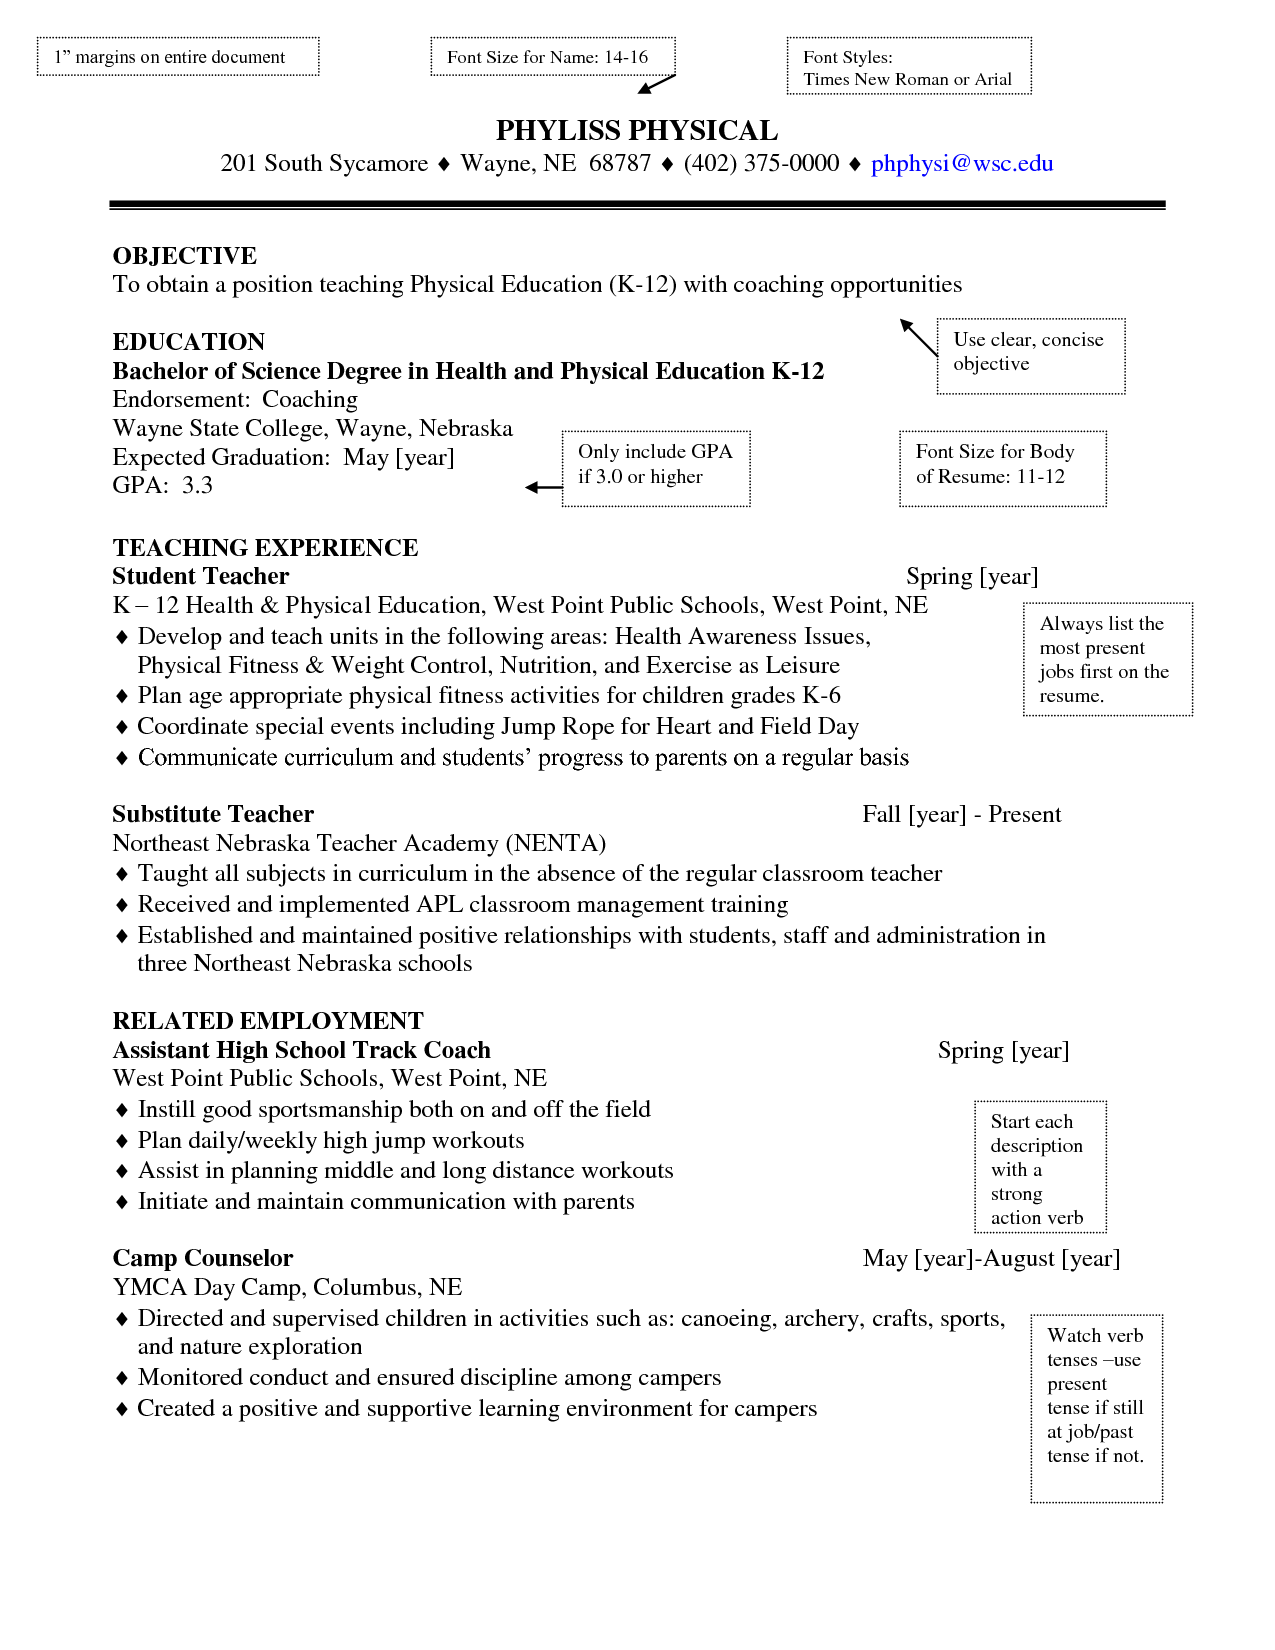 Samples Of Special Education Teacher Resumes  Resume For Special Education Teacher